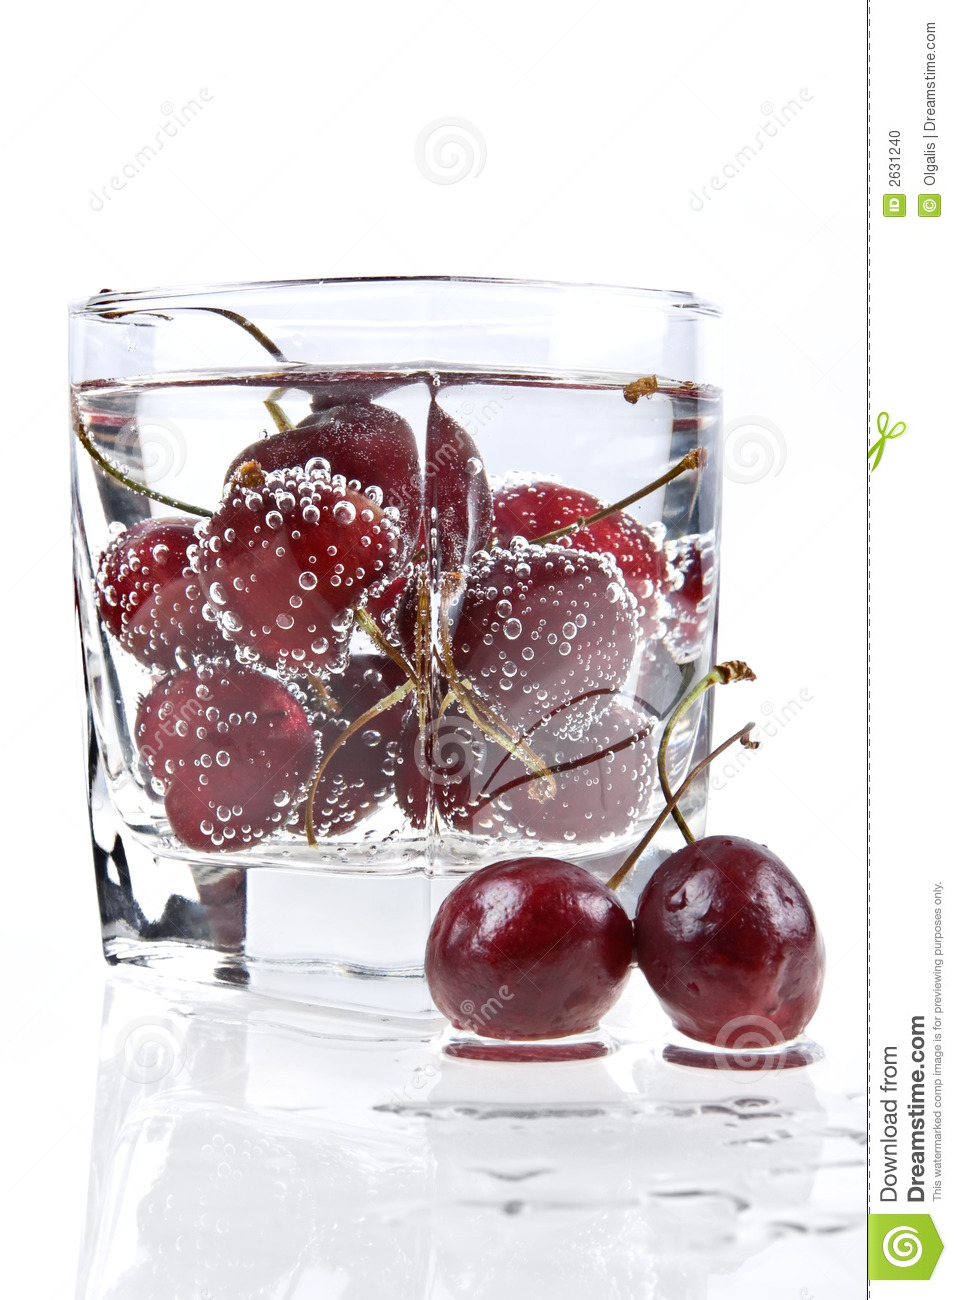 Sweet Cherry And Mineral Water Stock Photo - Image: 2631240